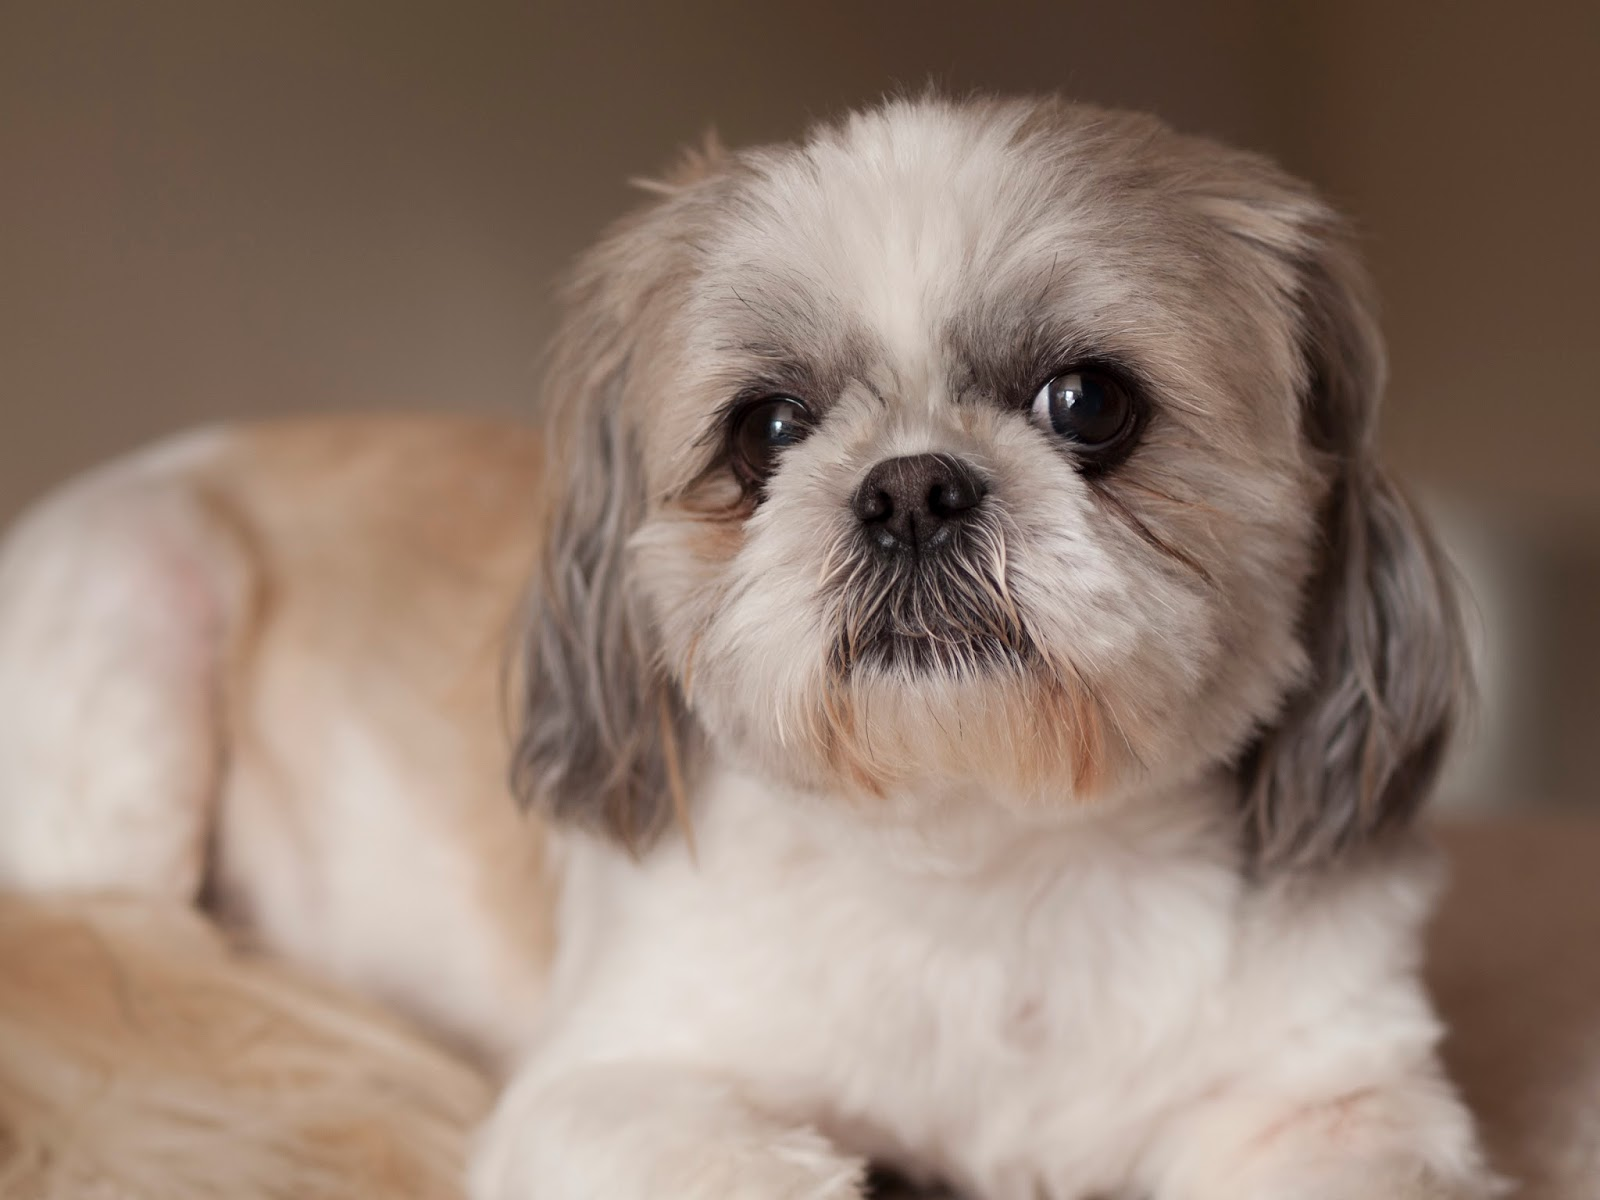 shih tzu characteristics the shih tzu mom interview with a shih tzu 2140